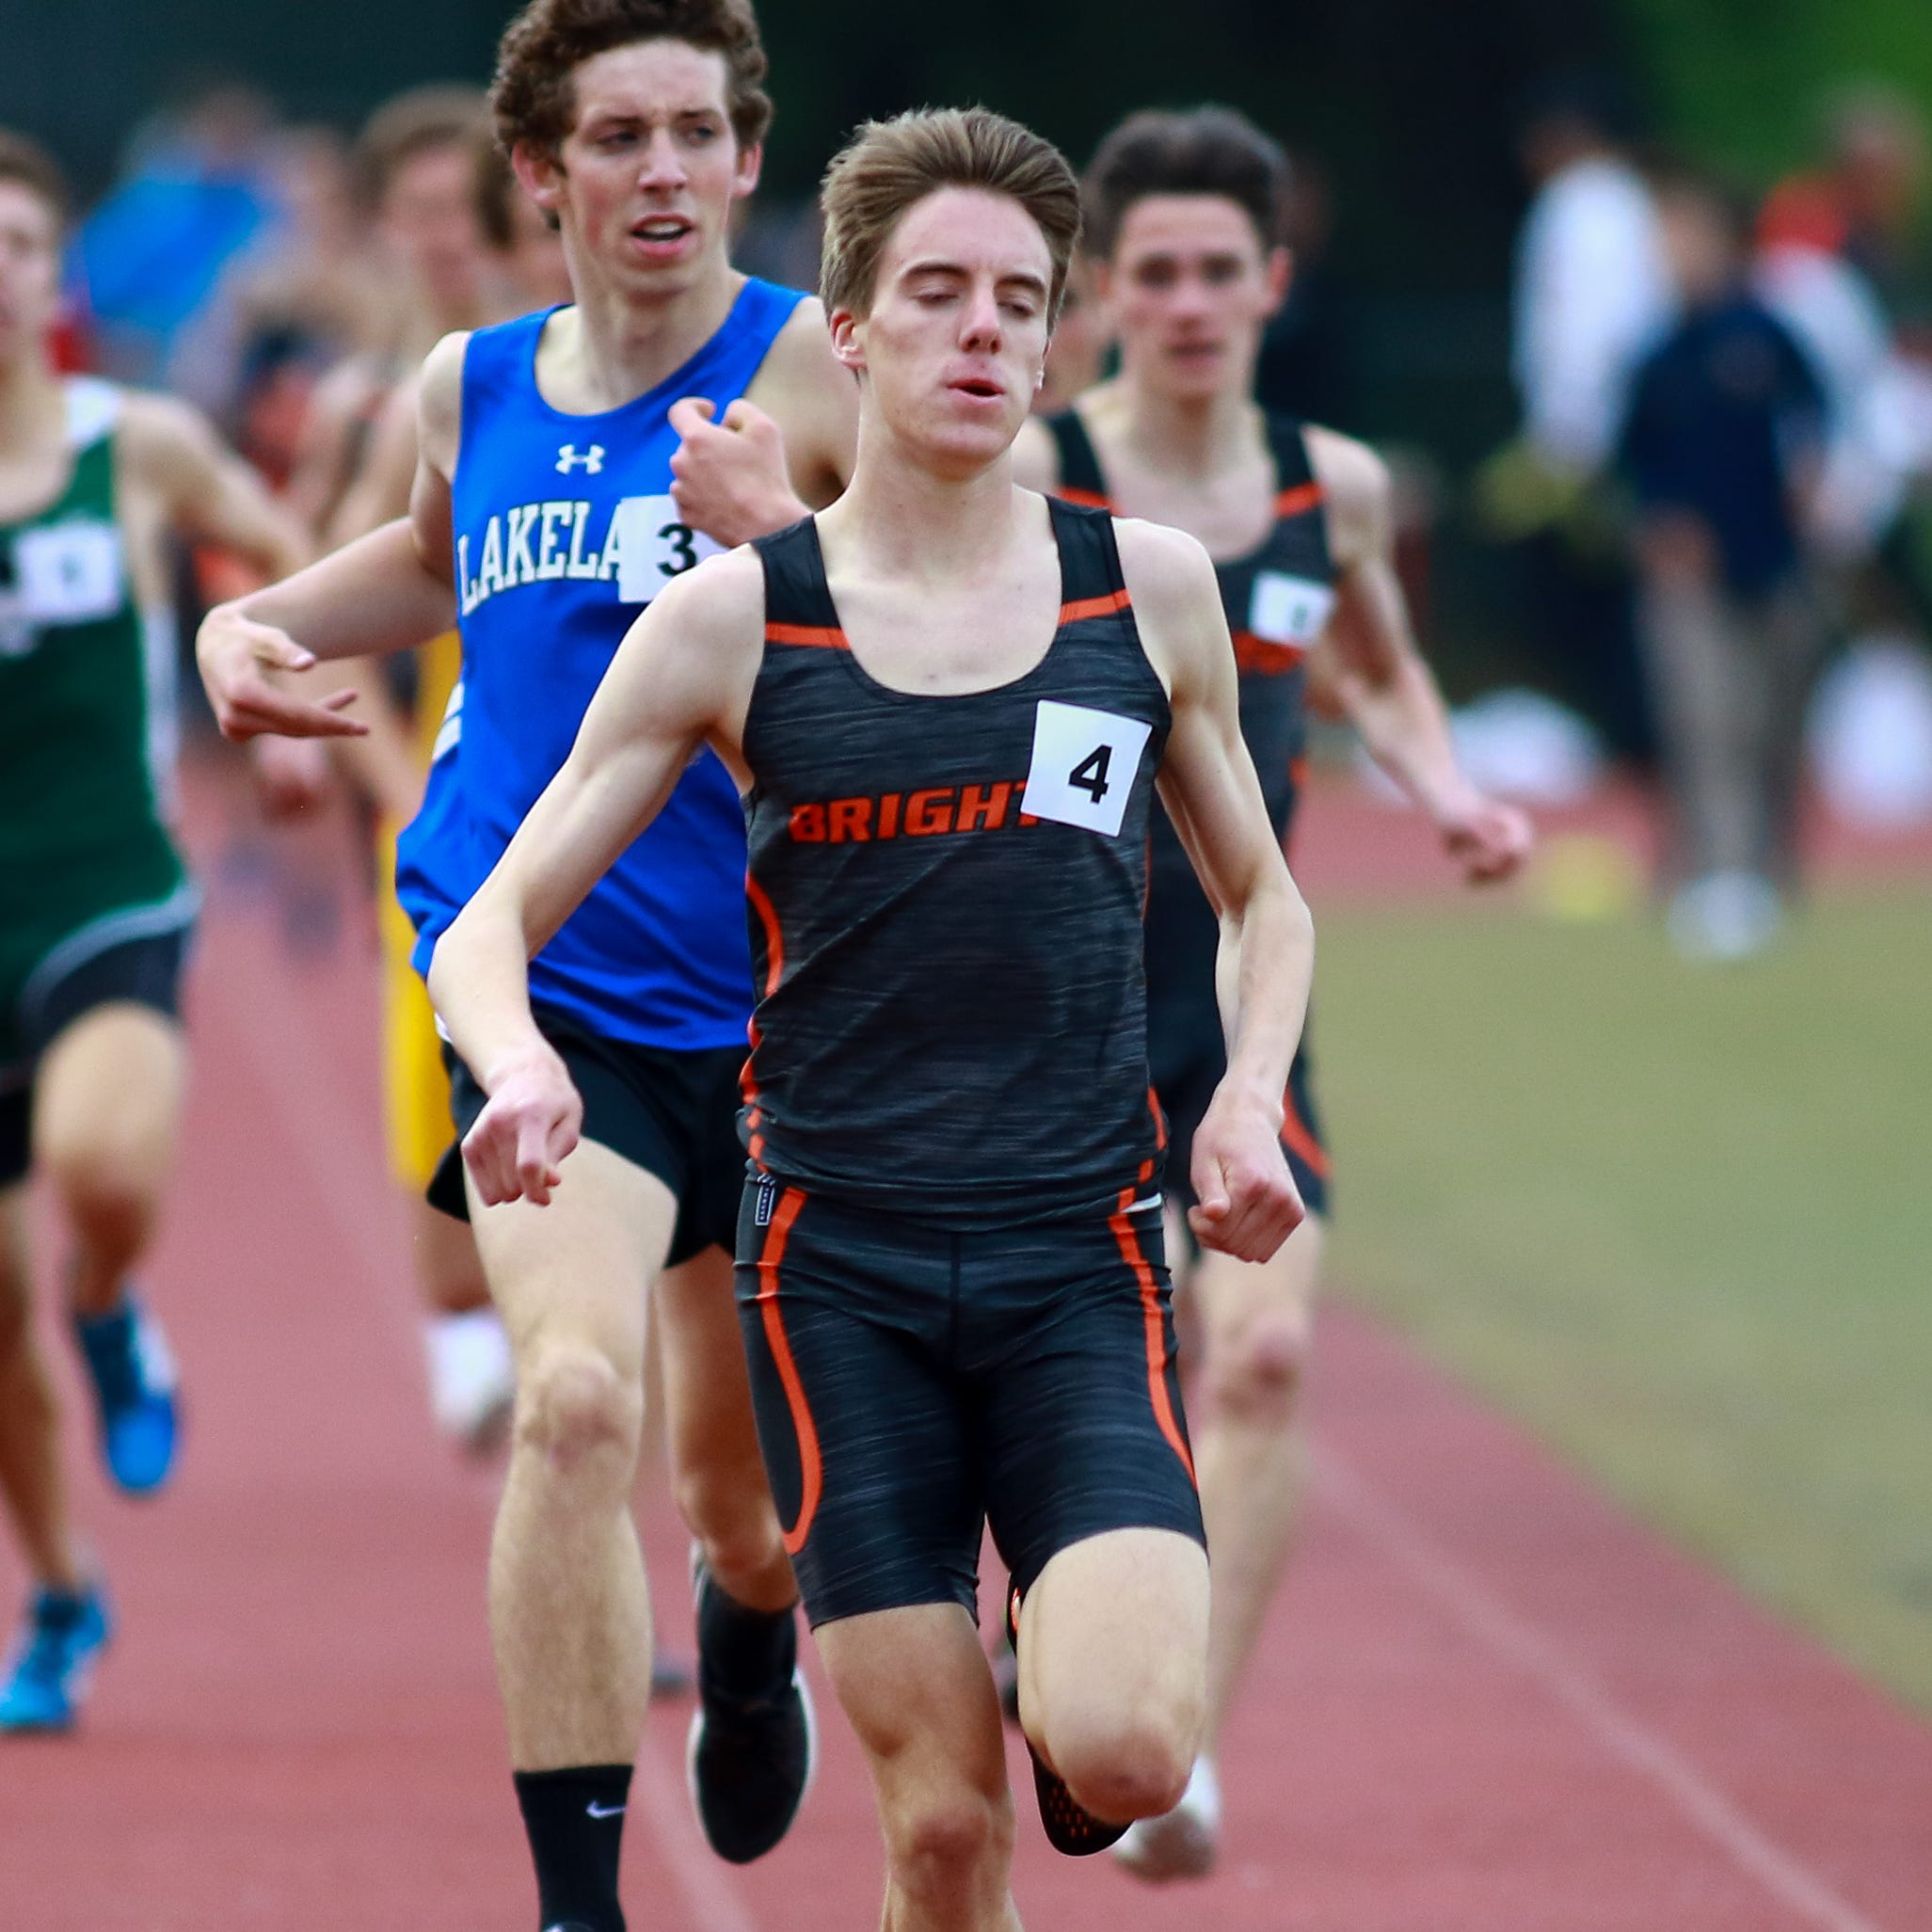 Spamer's distance sweep, fast relays carry Brighton boys to regional track championship